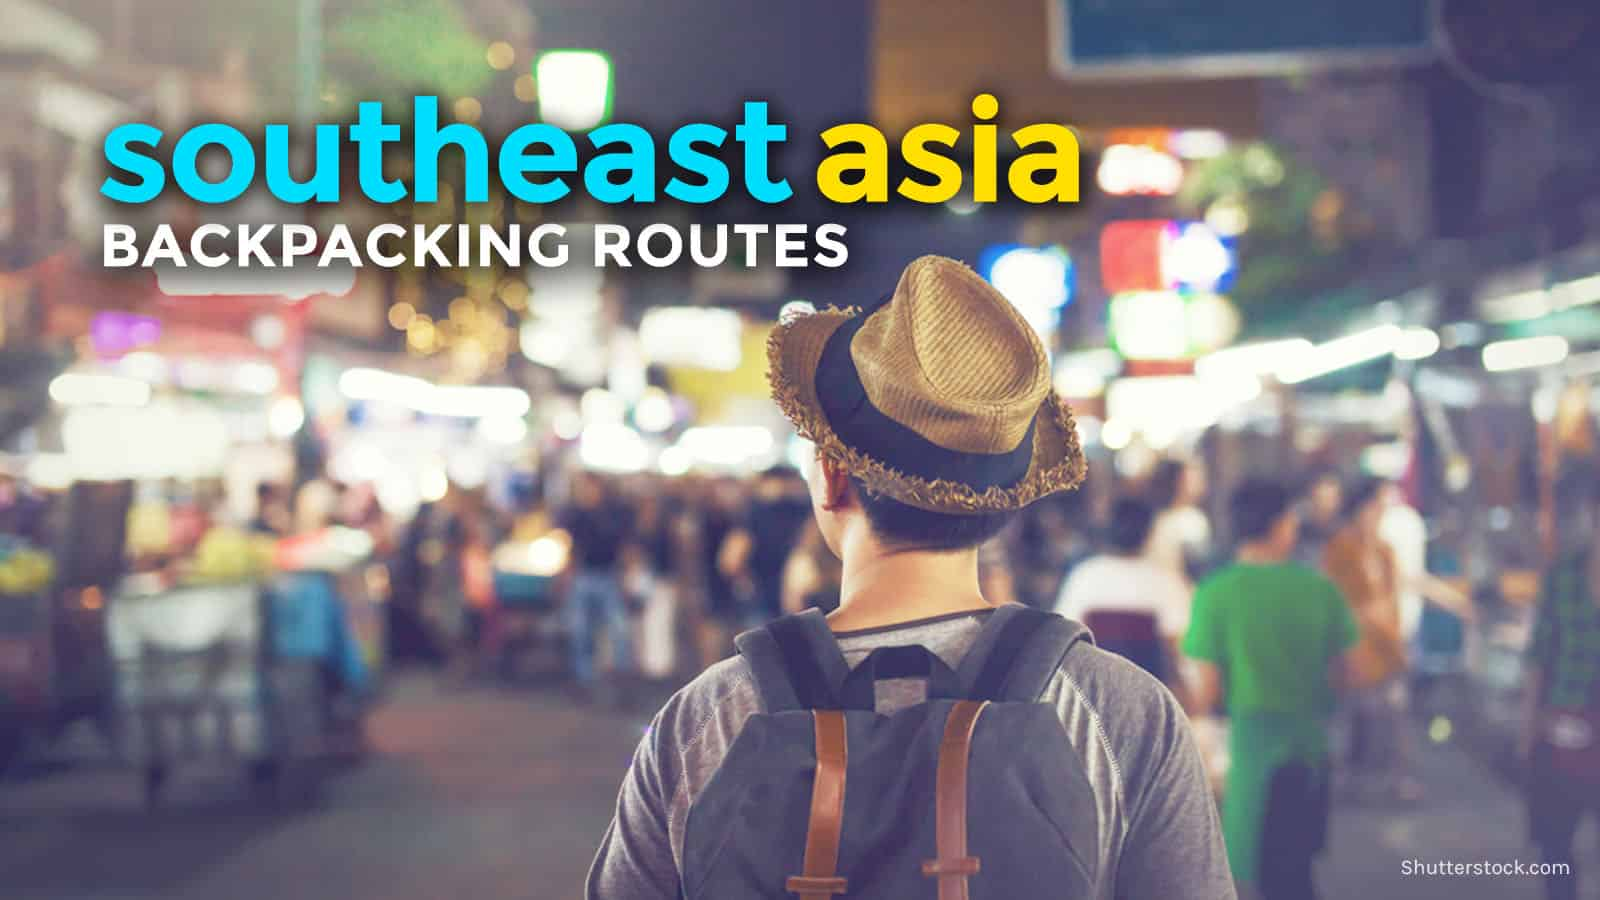 SOUTHEAST ASIA: DIY Backpacking Itineraries and Routes (2 Weeks)